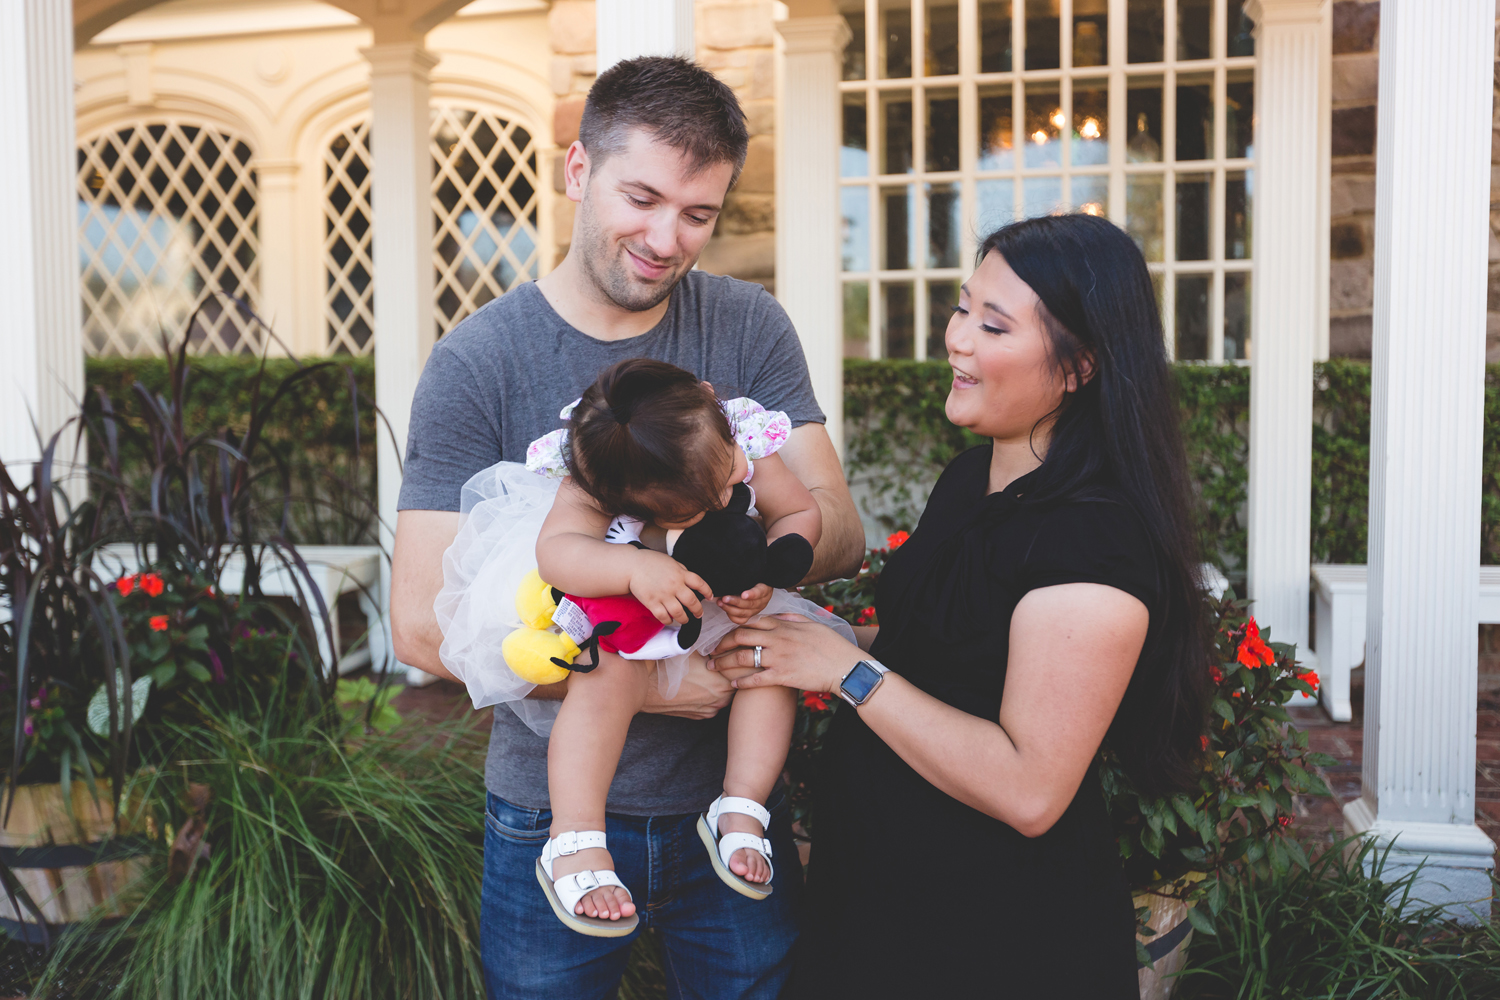 Jaime DiOrio - Disney Family Session - Orlando Family Photographer - Magic Kingdom Family Session - Documentary Photographer (111).jpg